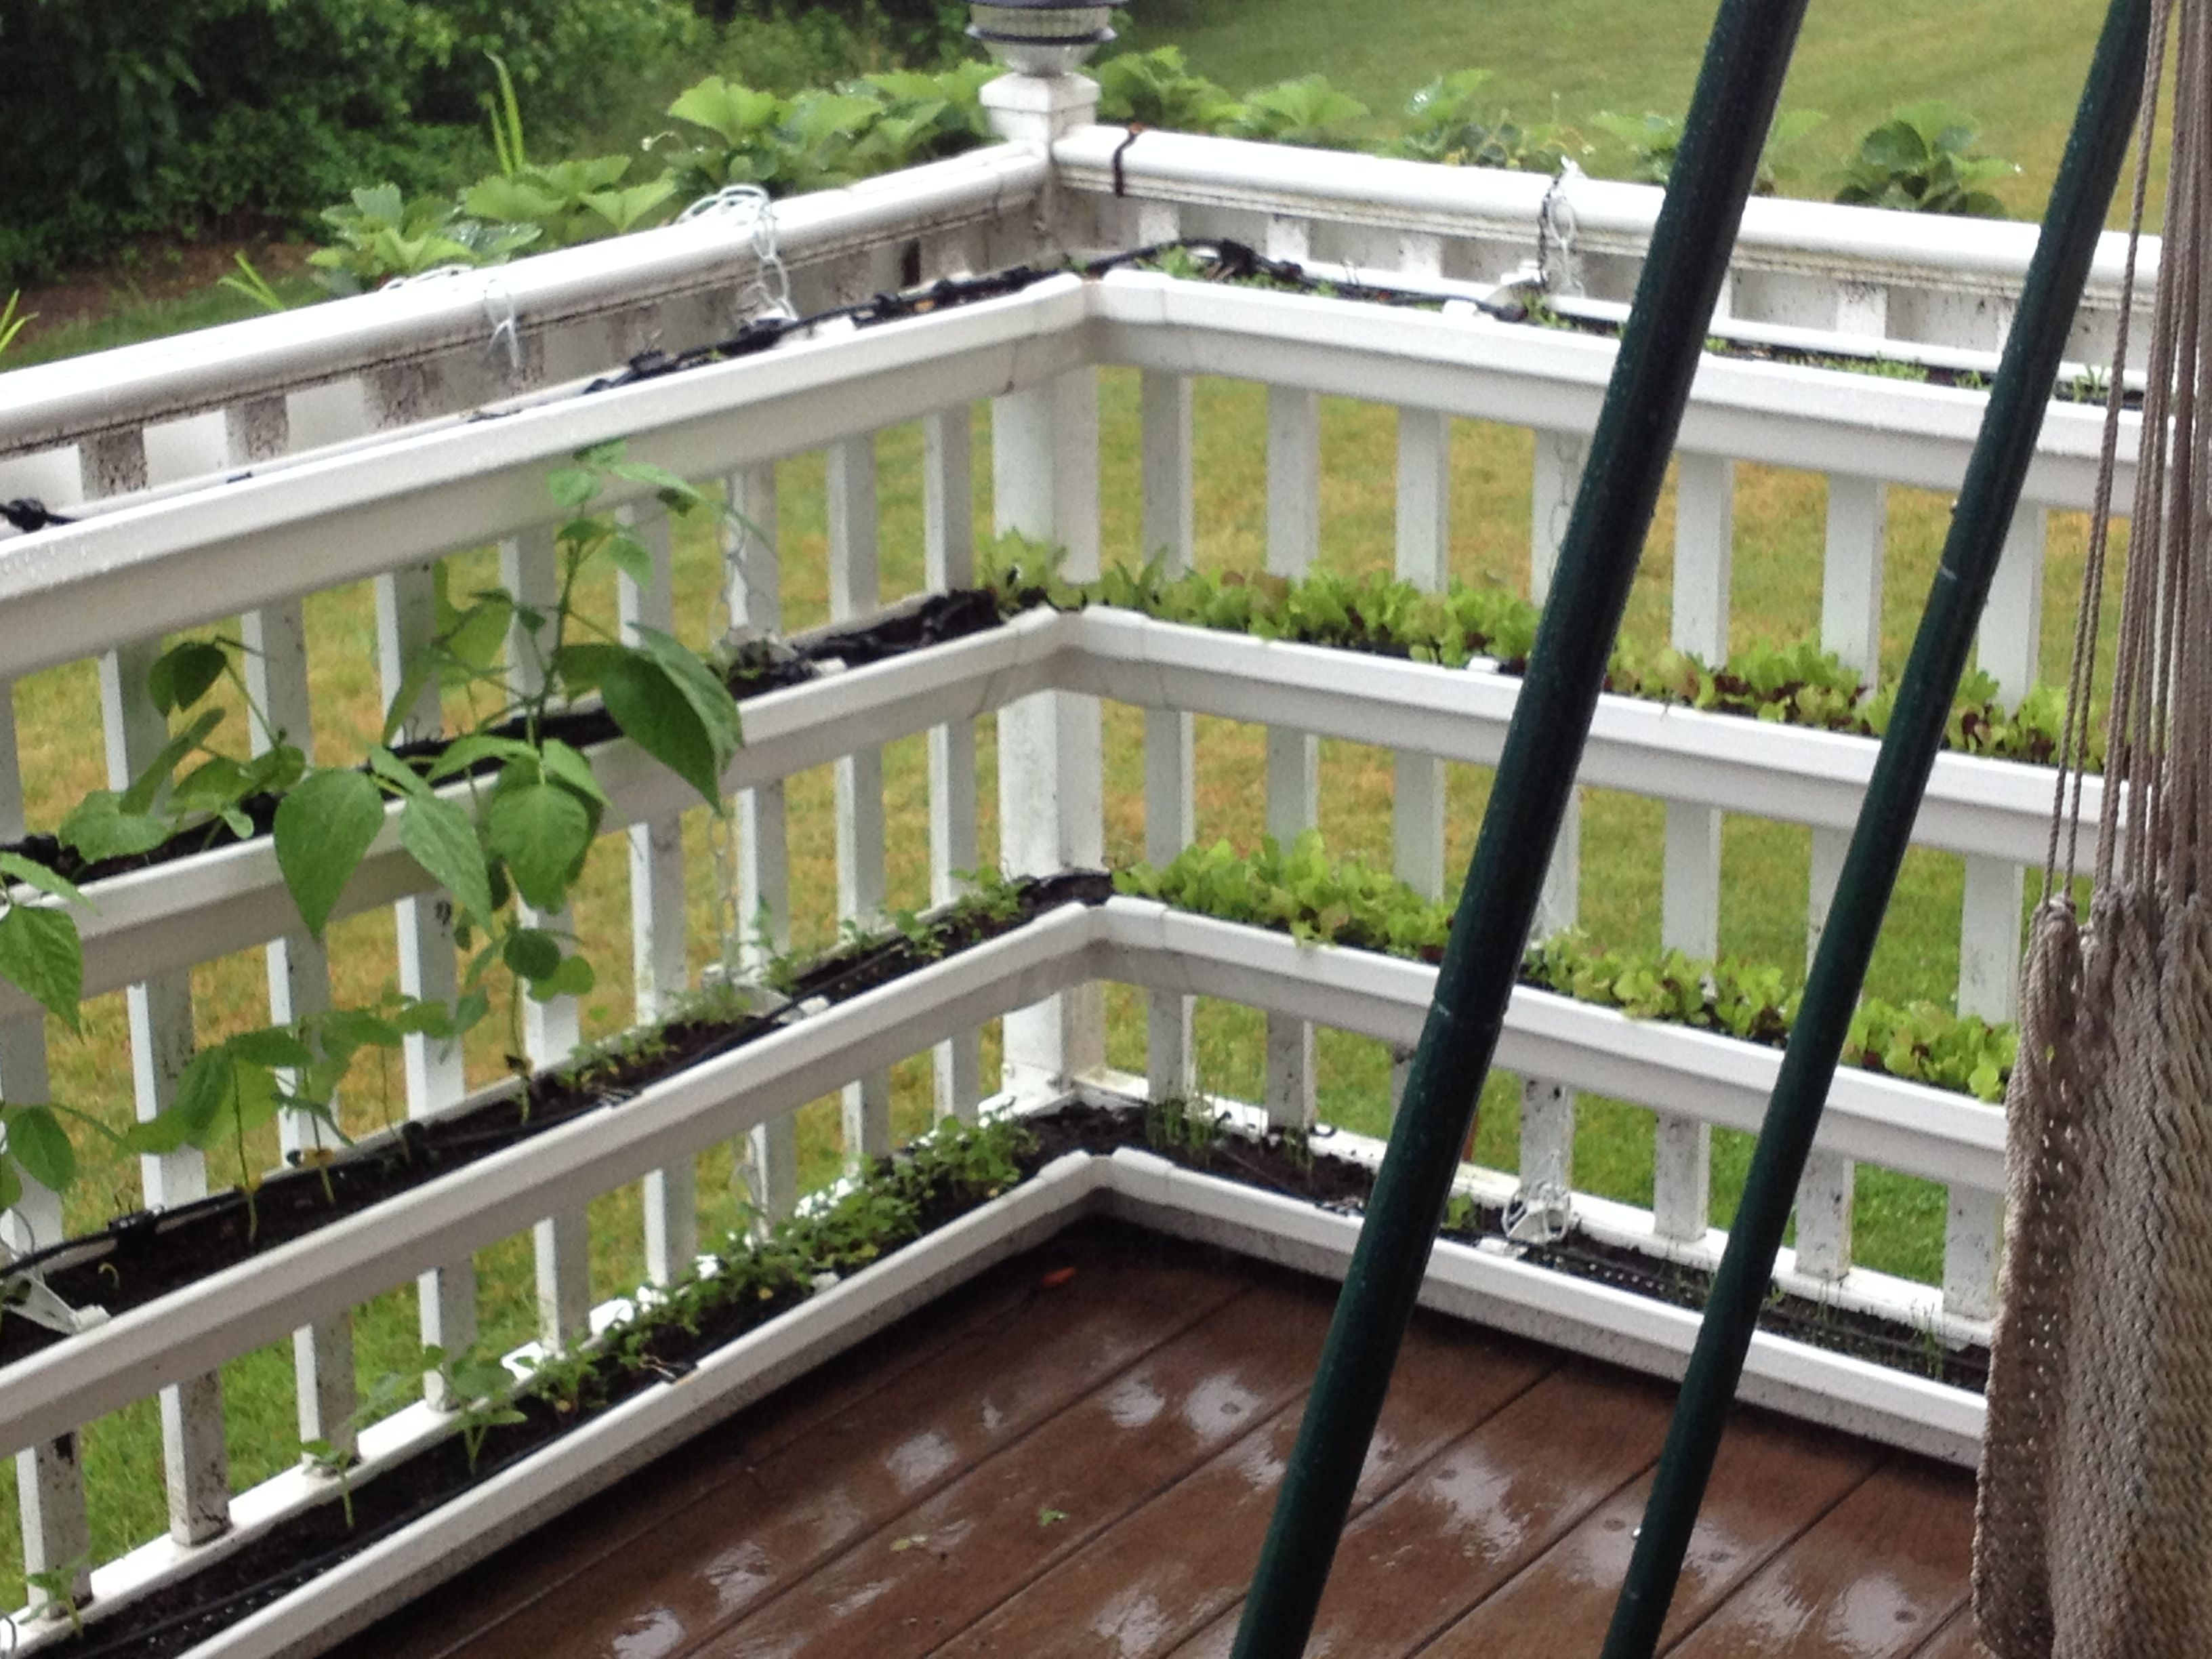 Close up of the balcony gutter garden balcony farming for Balcony vertical garden